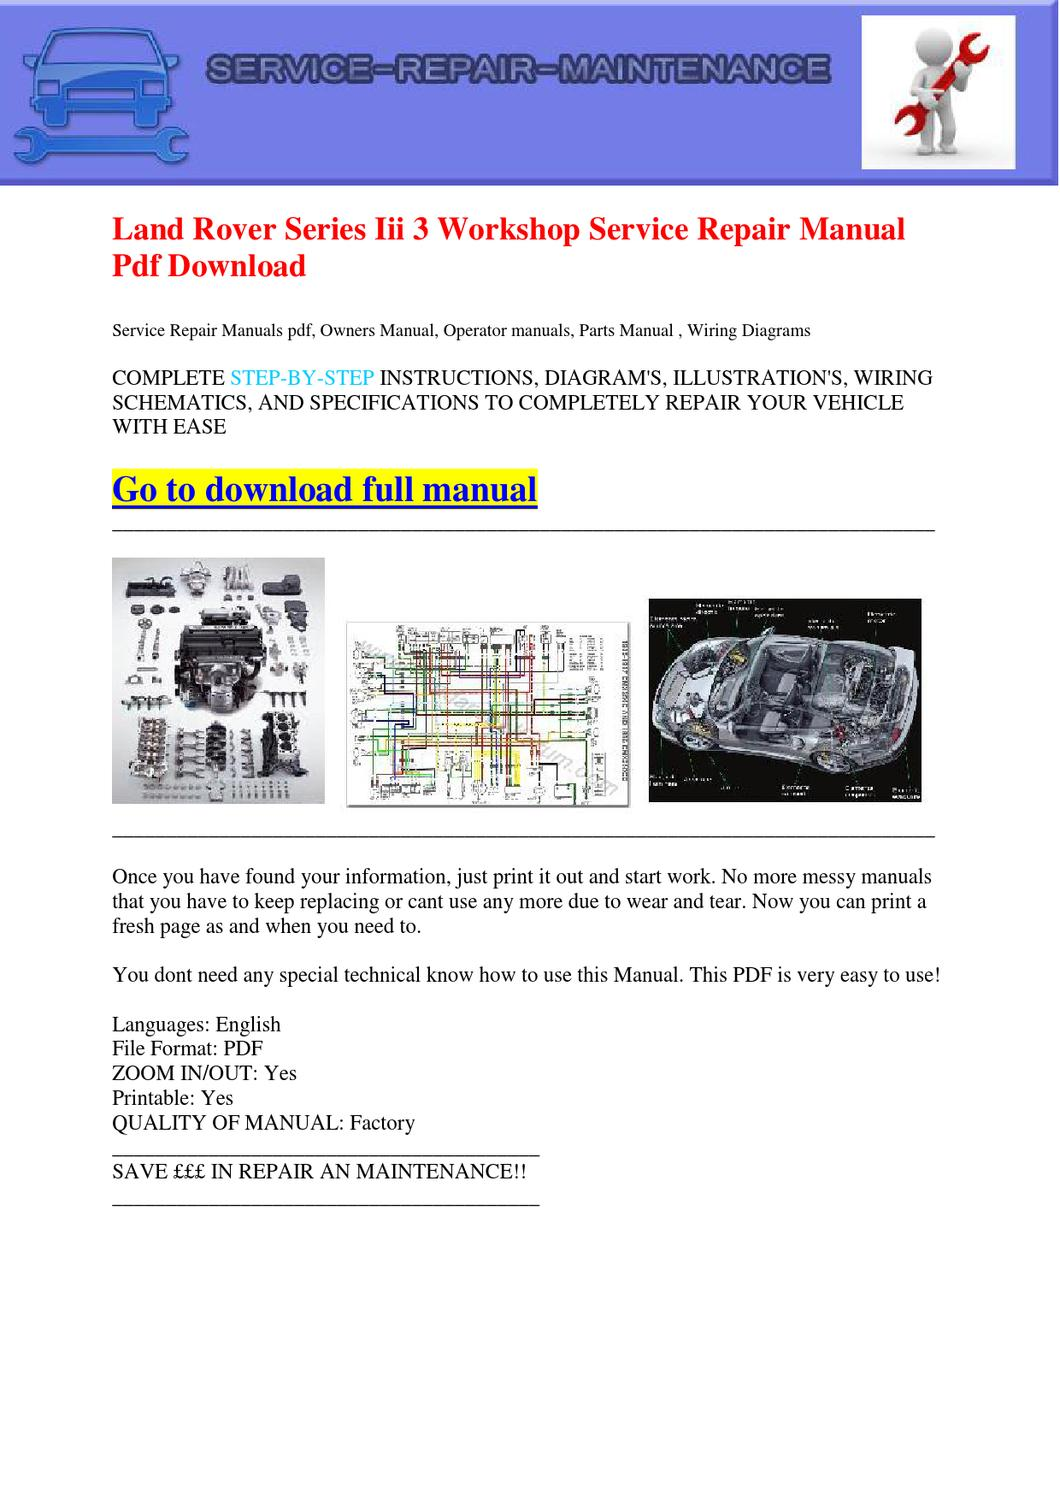 Land Rover Series Iii 3 Workshop Service Repair Manual Pdf